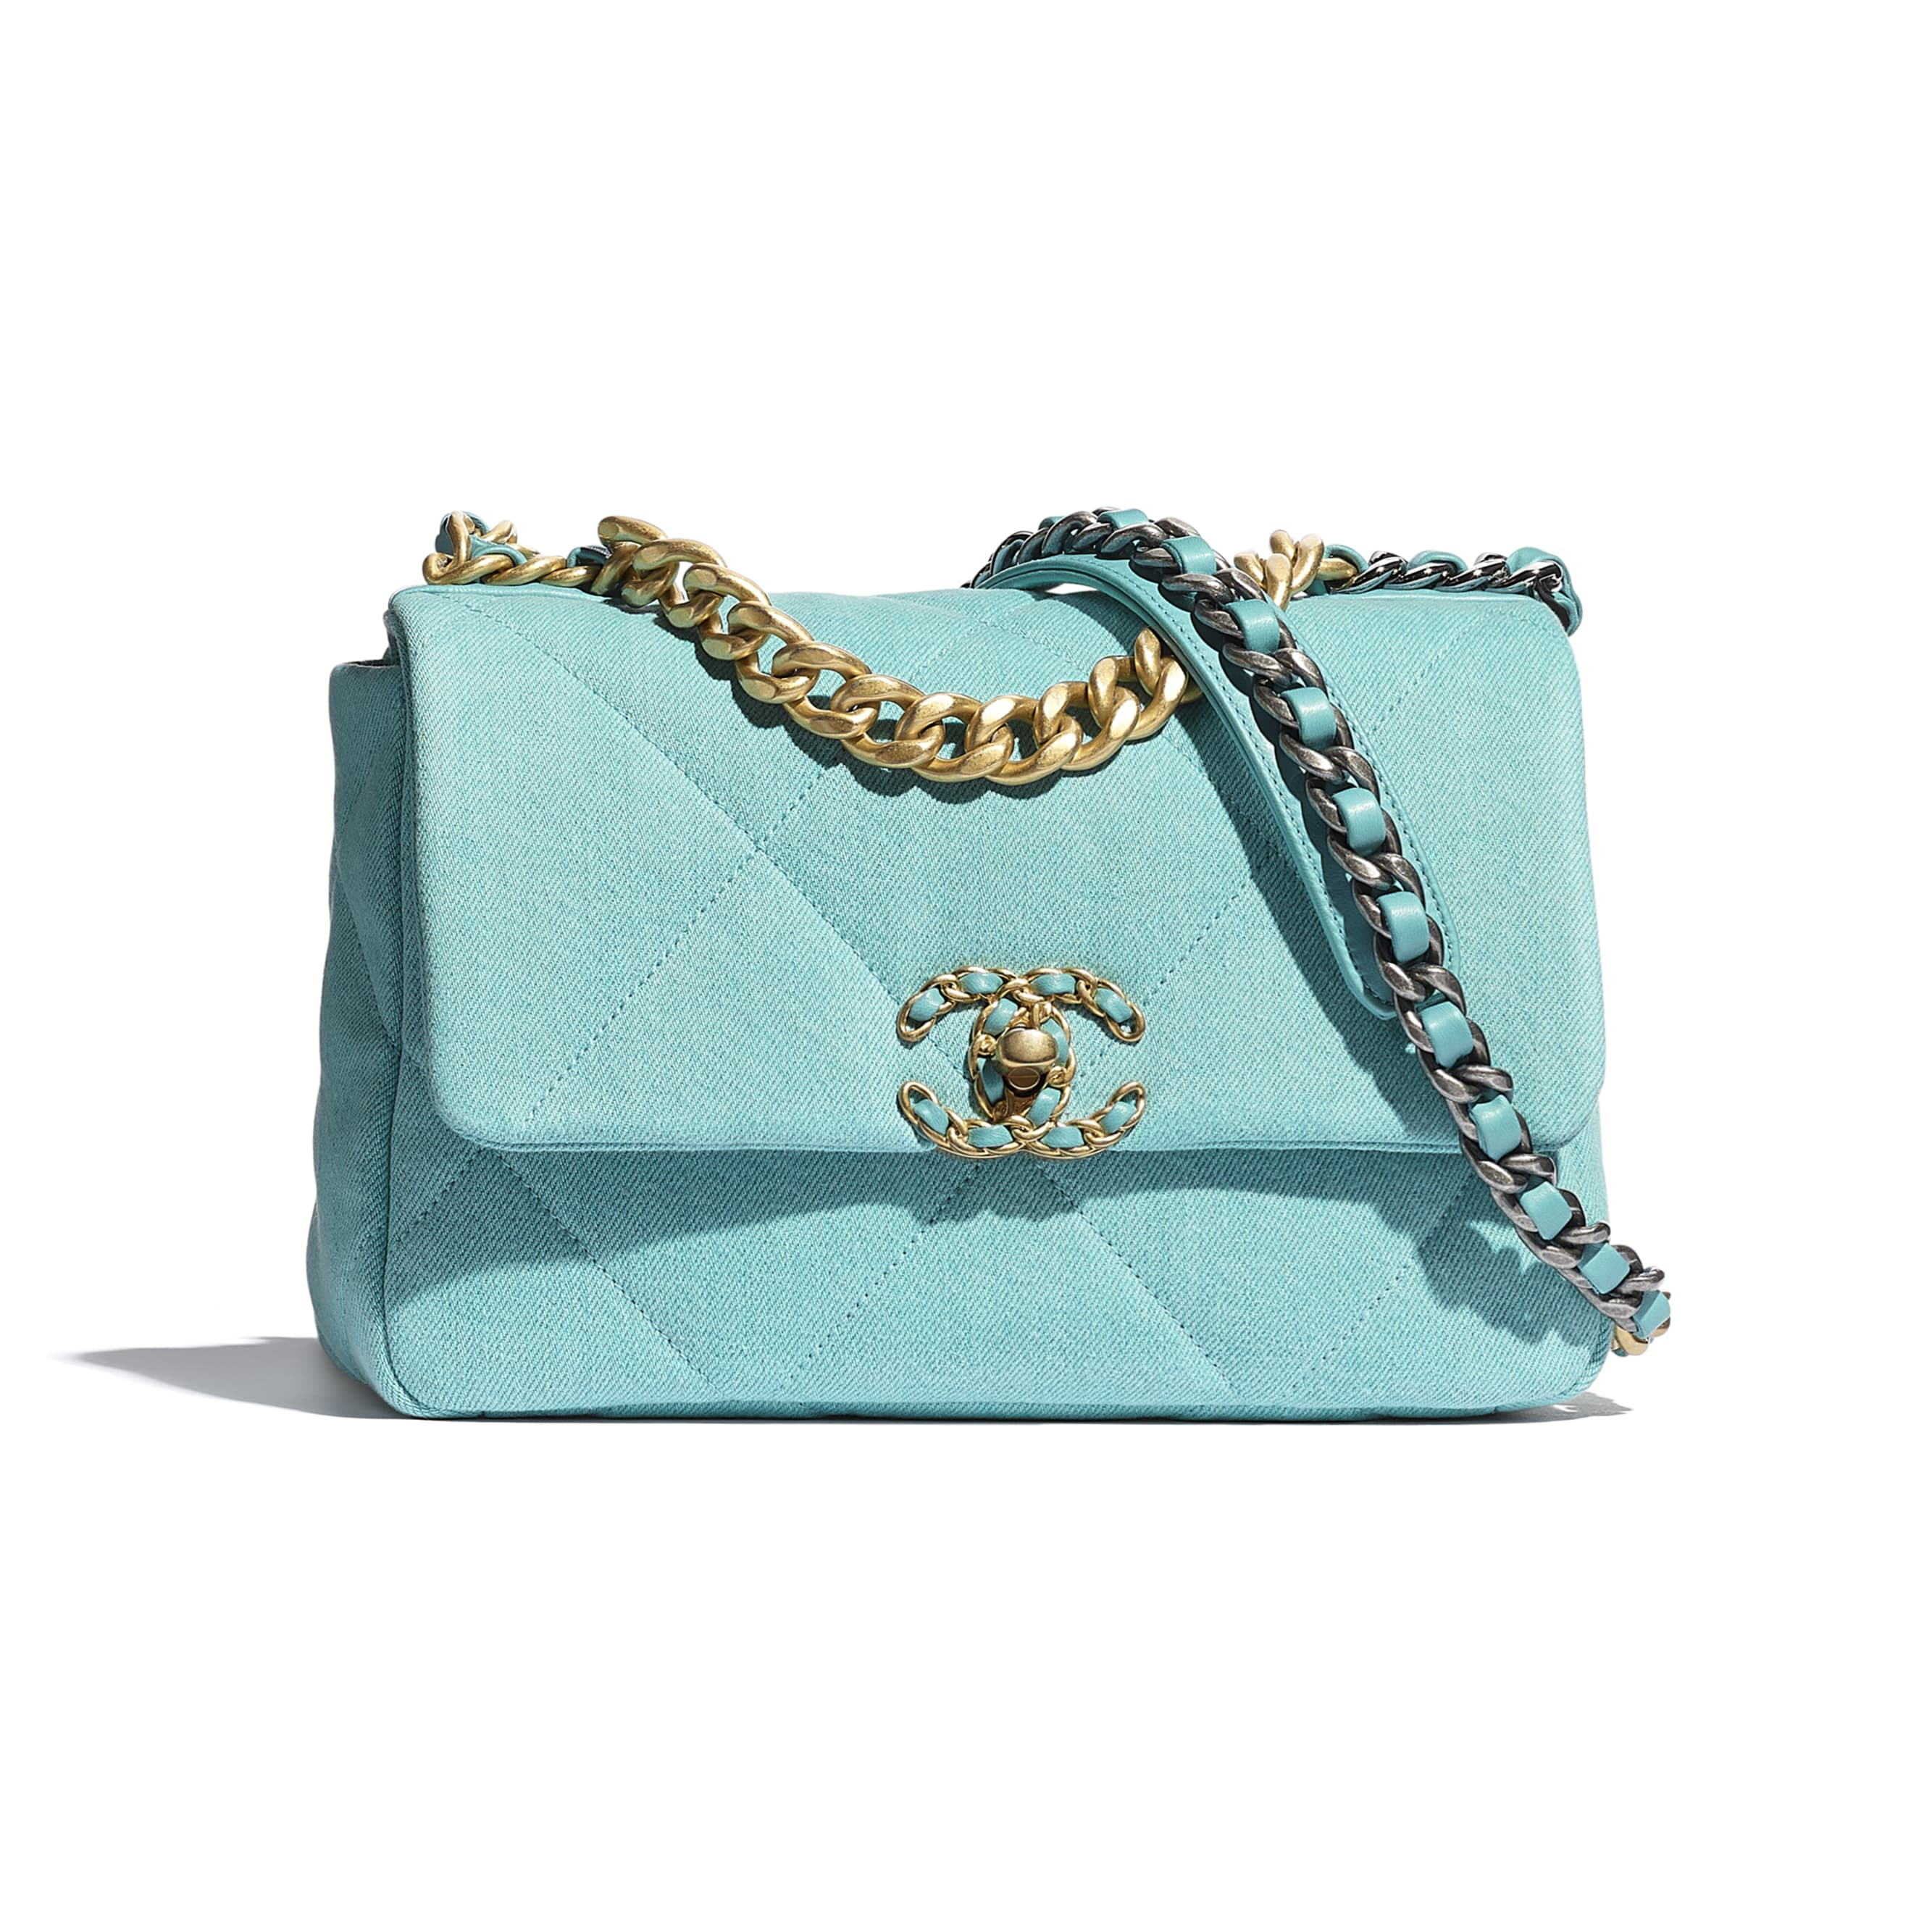 CHANEL 19 Flap Bag - Neon Blue - Denim, Calfskin, Gold-Tone, Silver-Tone & Ruthenium-Finish Metal - CHANEL - Default view - see standard sized version